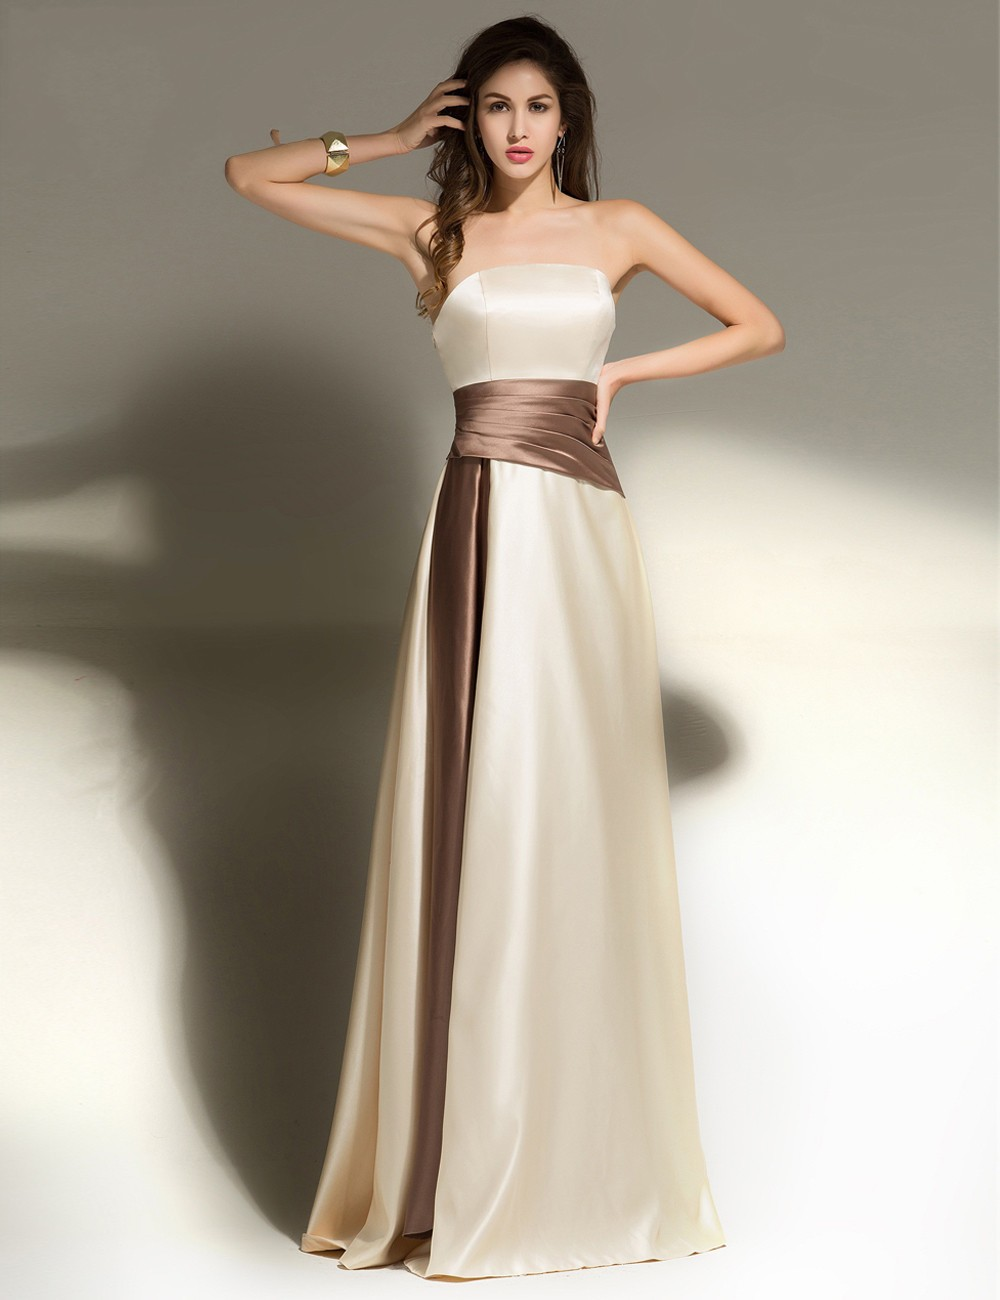 Compare Prices on Bridesmaid Dresses Brown- Online Shopping/Buy ...